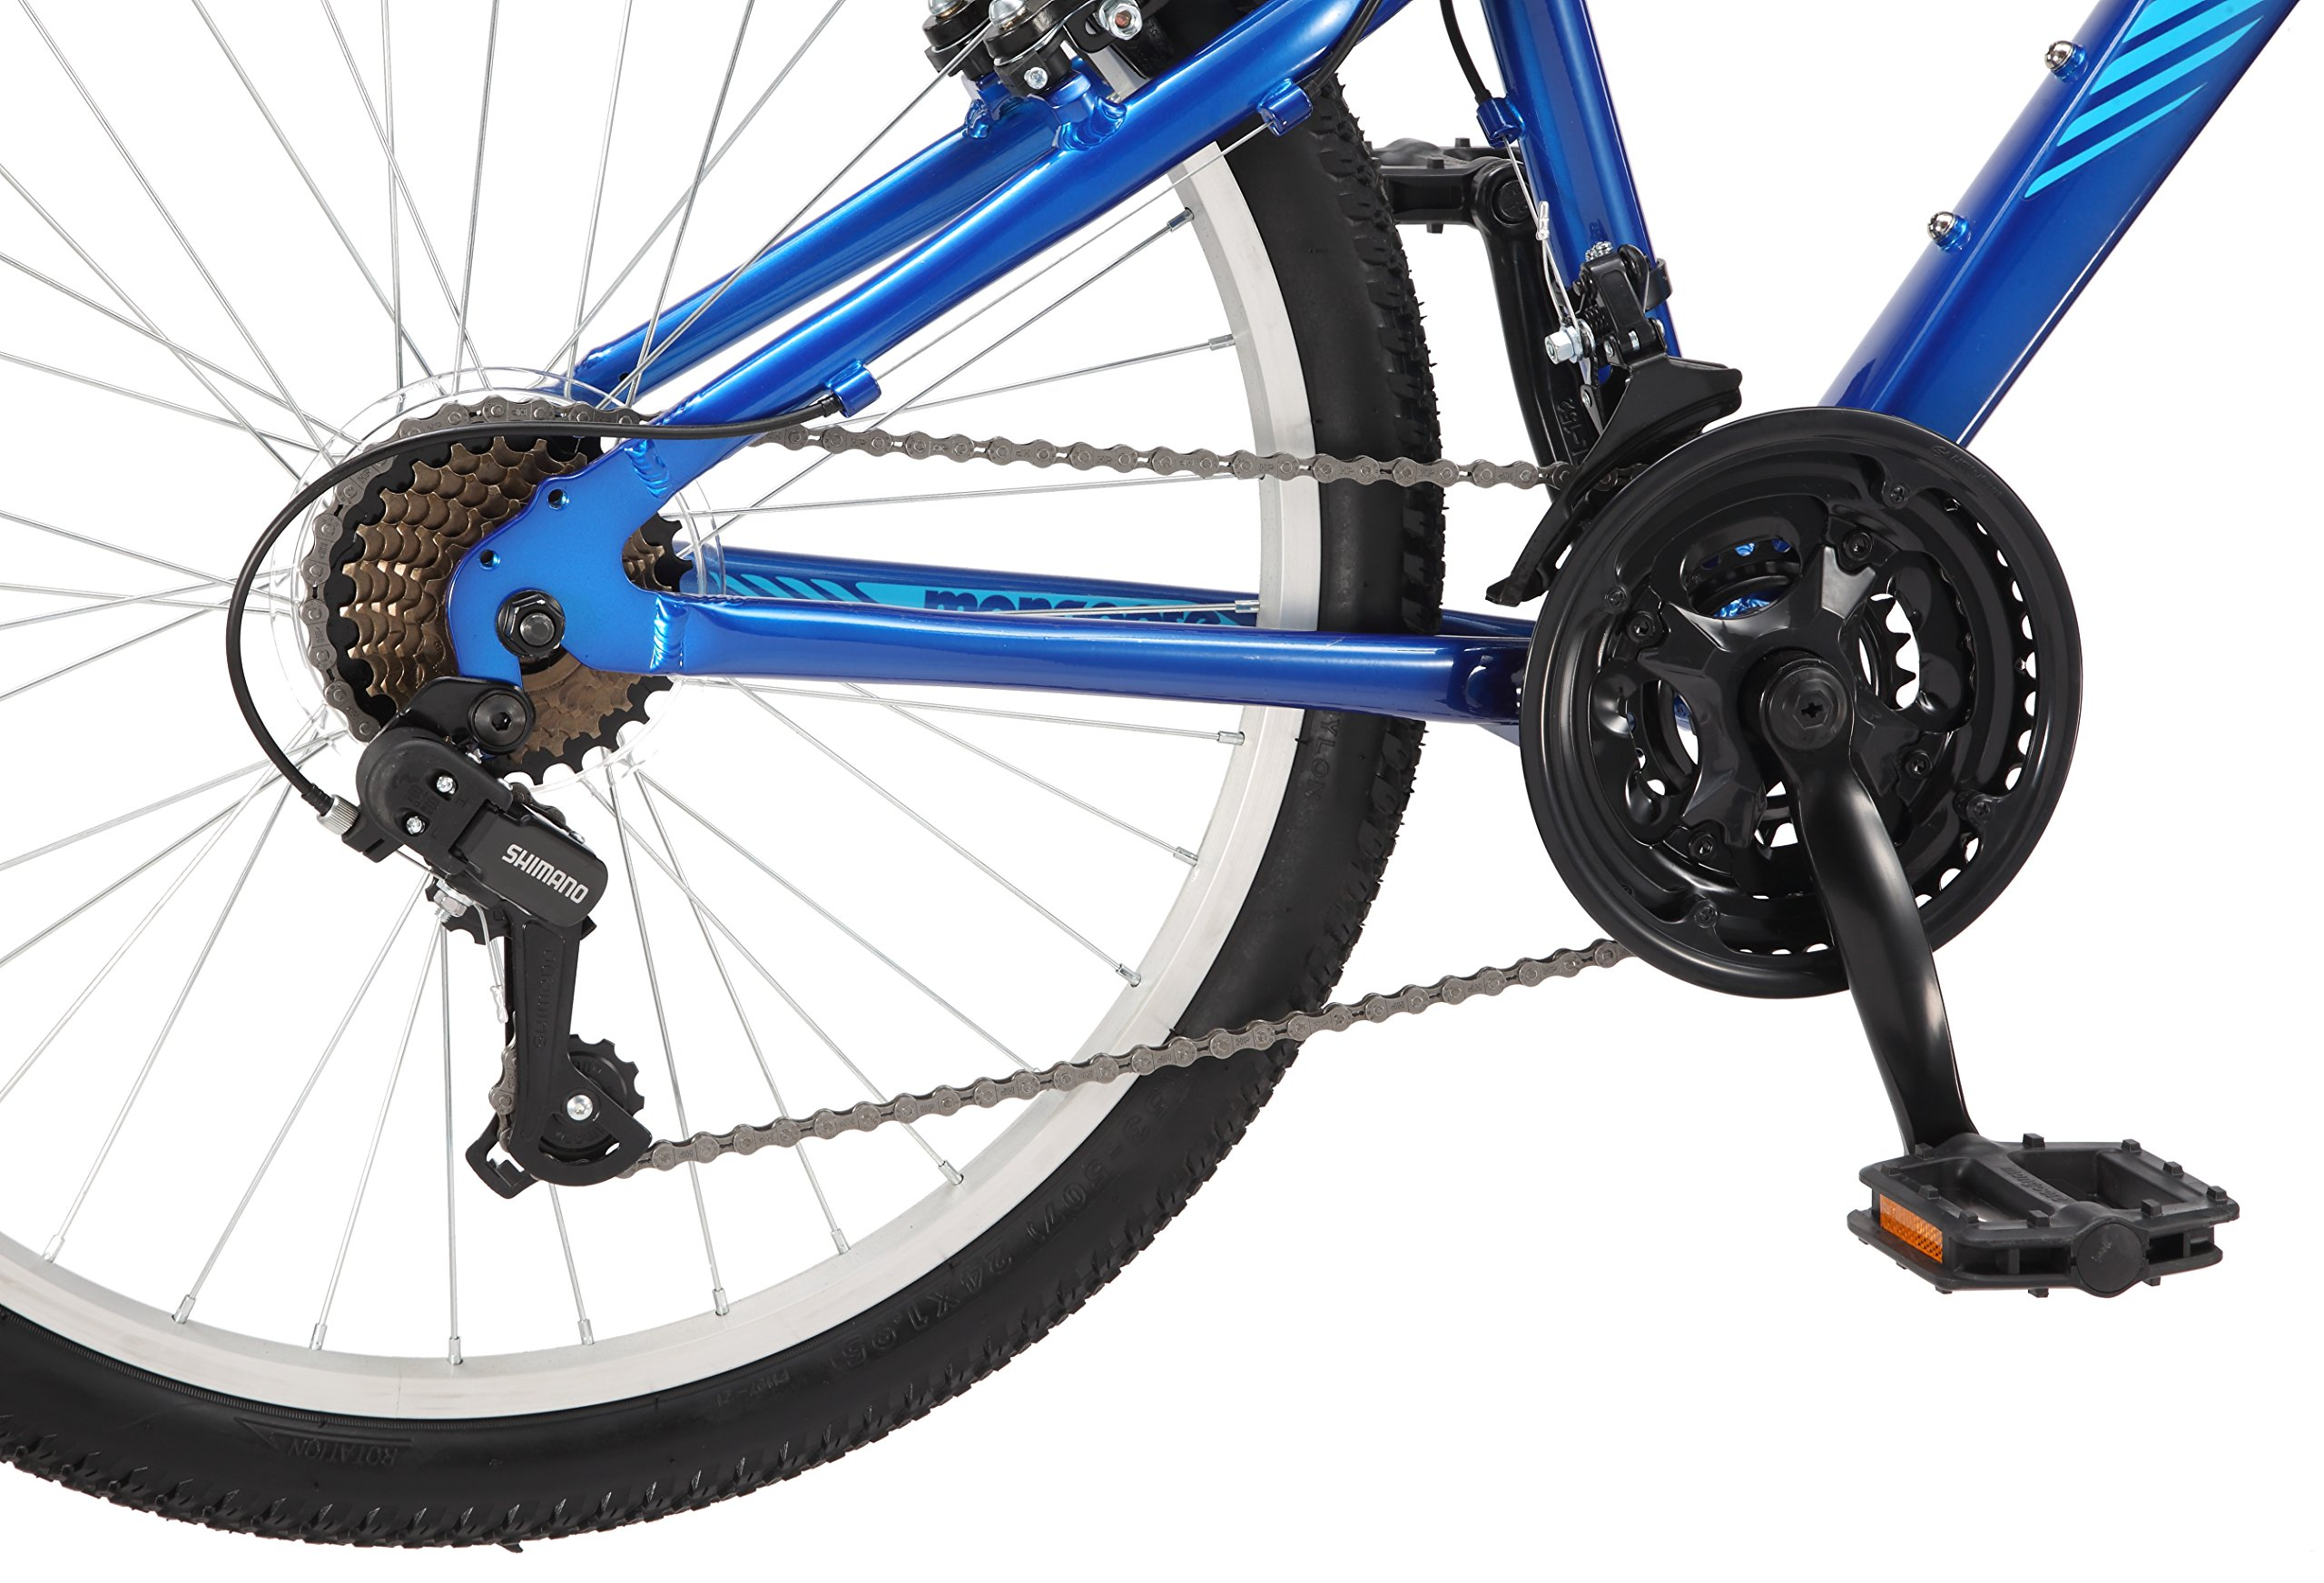 Mongoose Camrock 24'' Wheel Mountain Bicycle, Blue, One Size by Mongoose (Image #7)